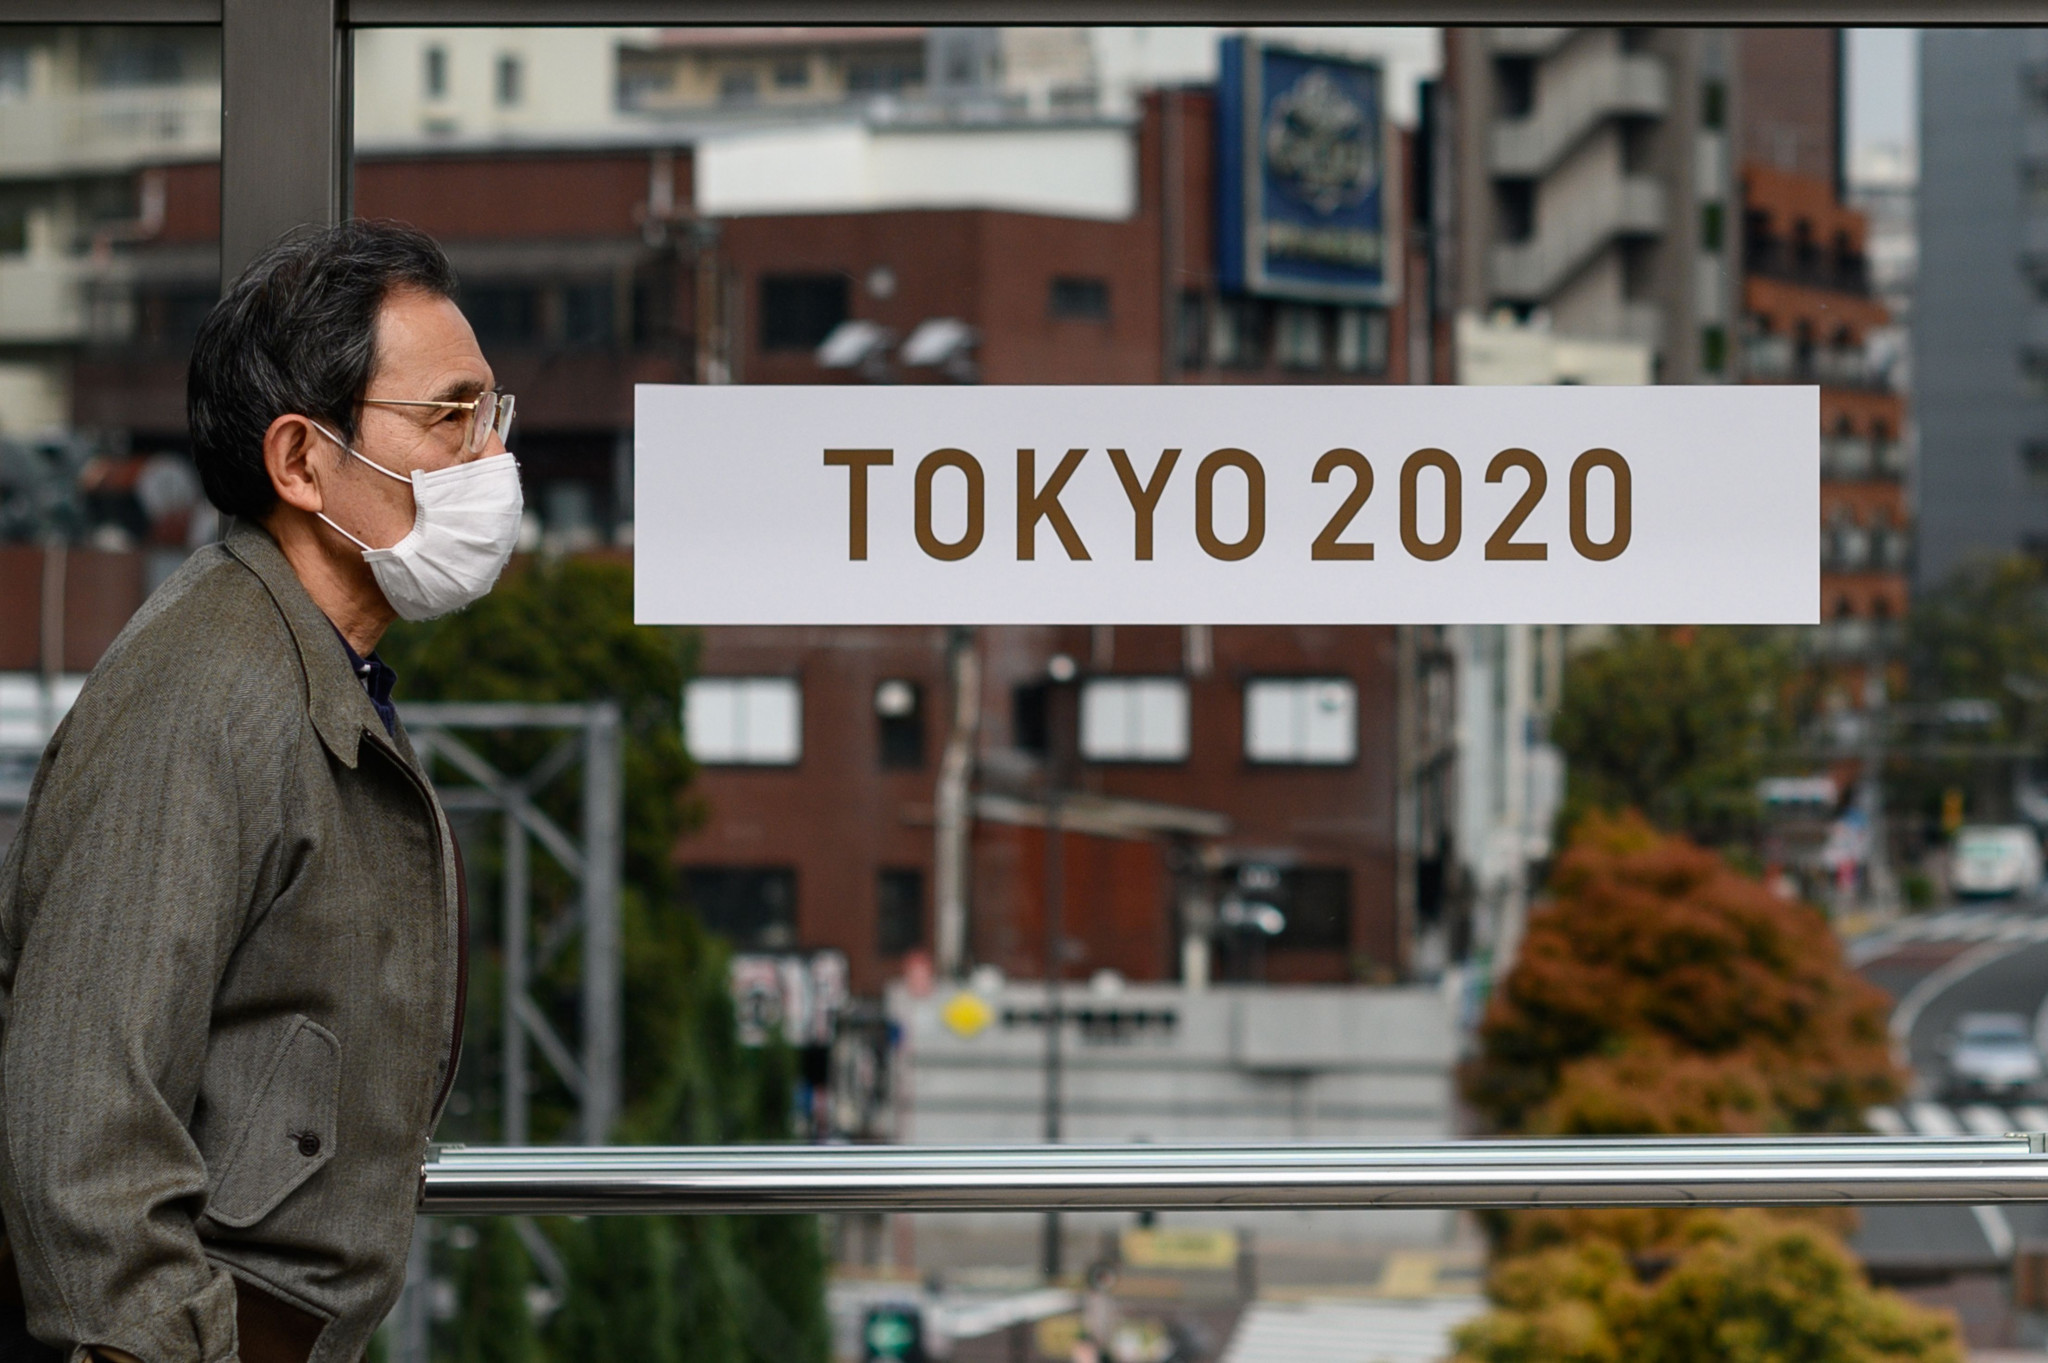 IOC Athletes' Commission supports new Tokyo 2020 schedule